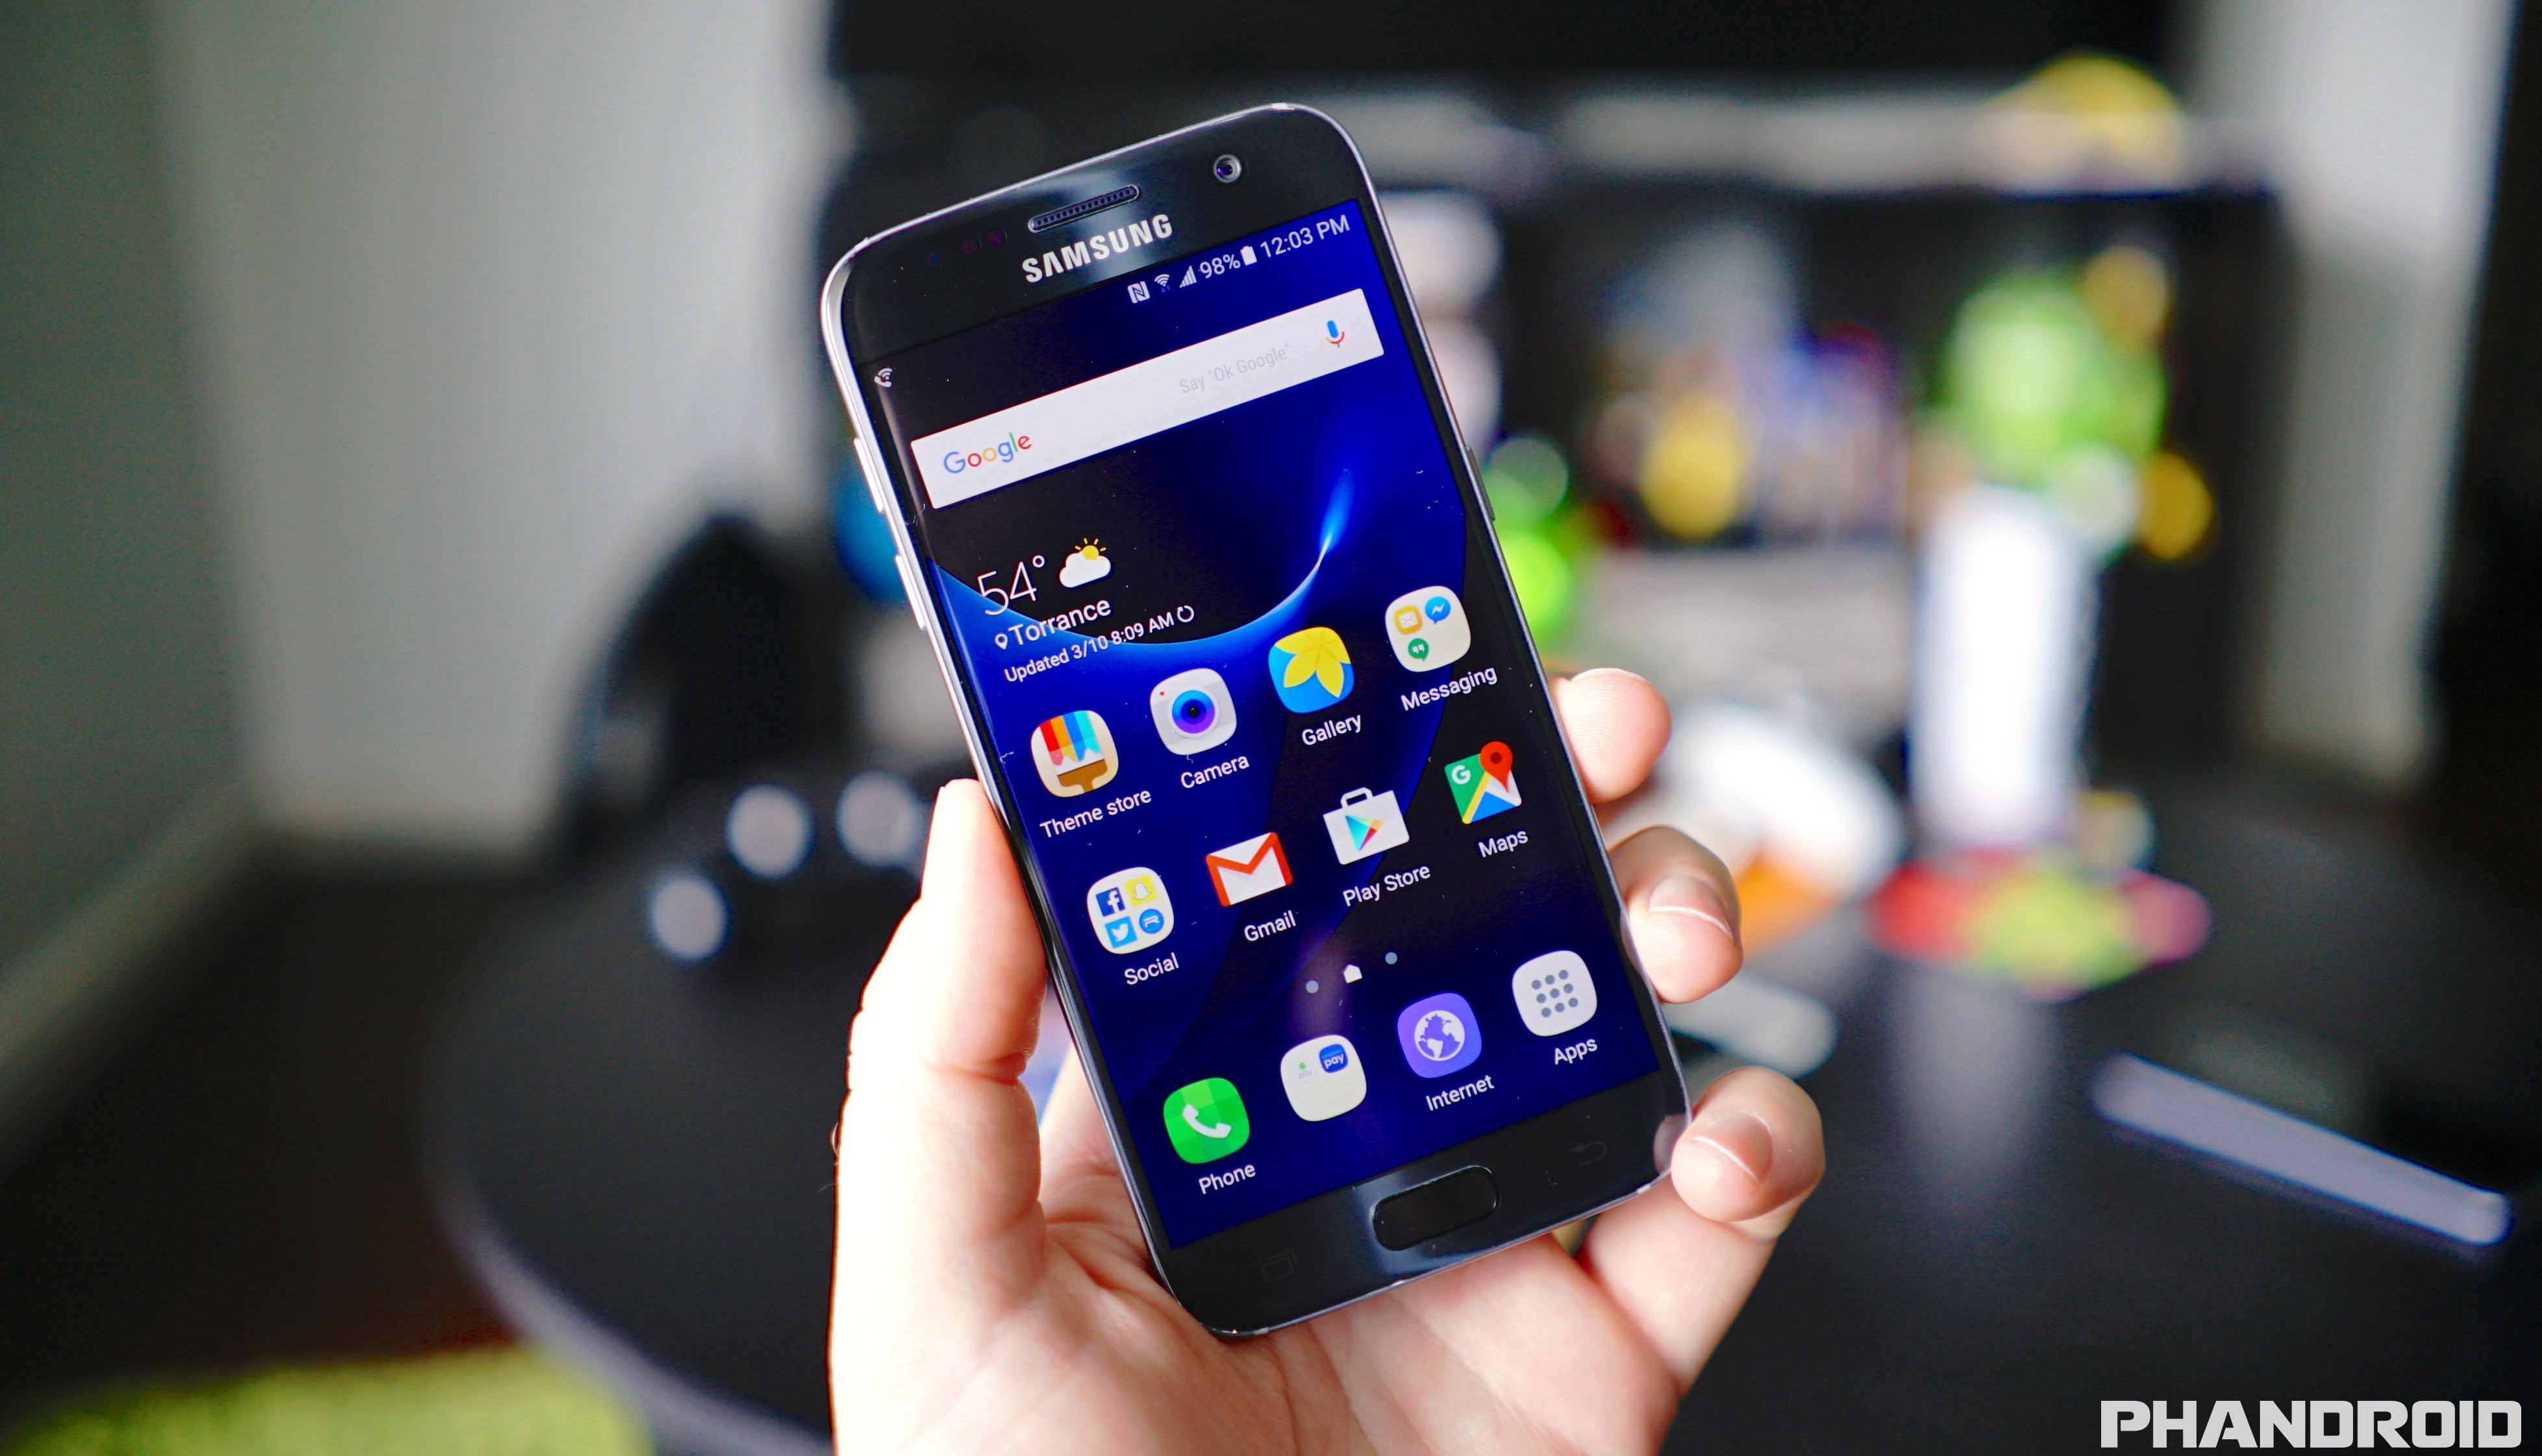 Deal Grab A Refurbished Samsung Galaxy S7 From Ebay For 500